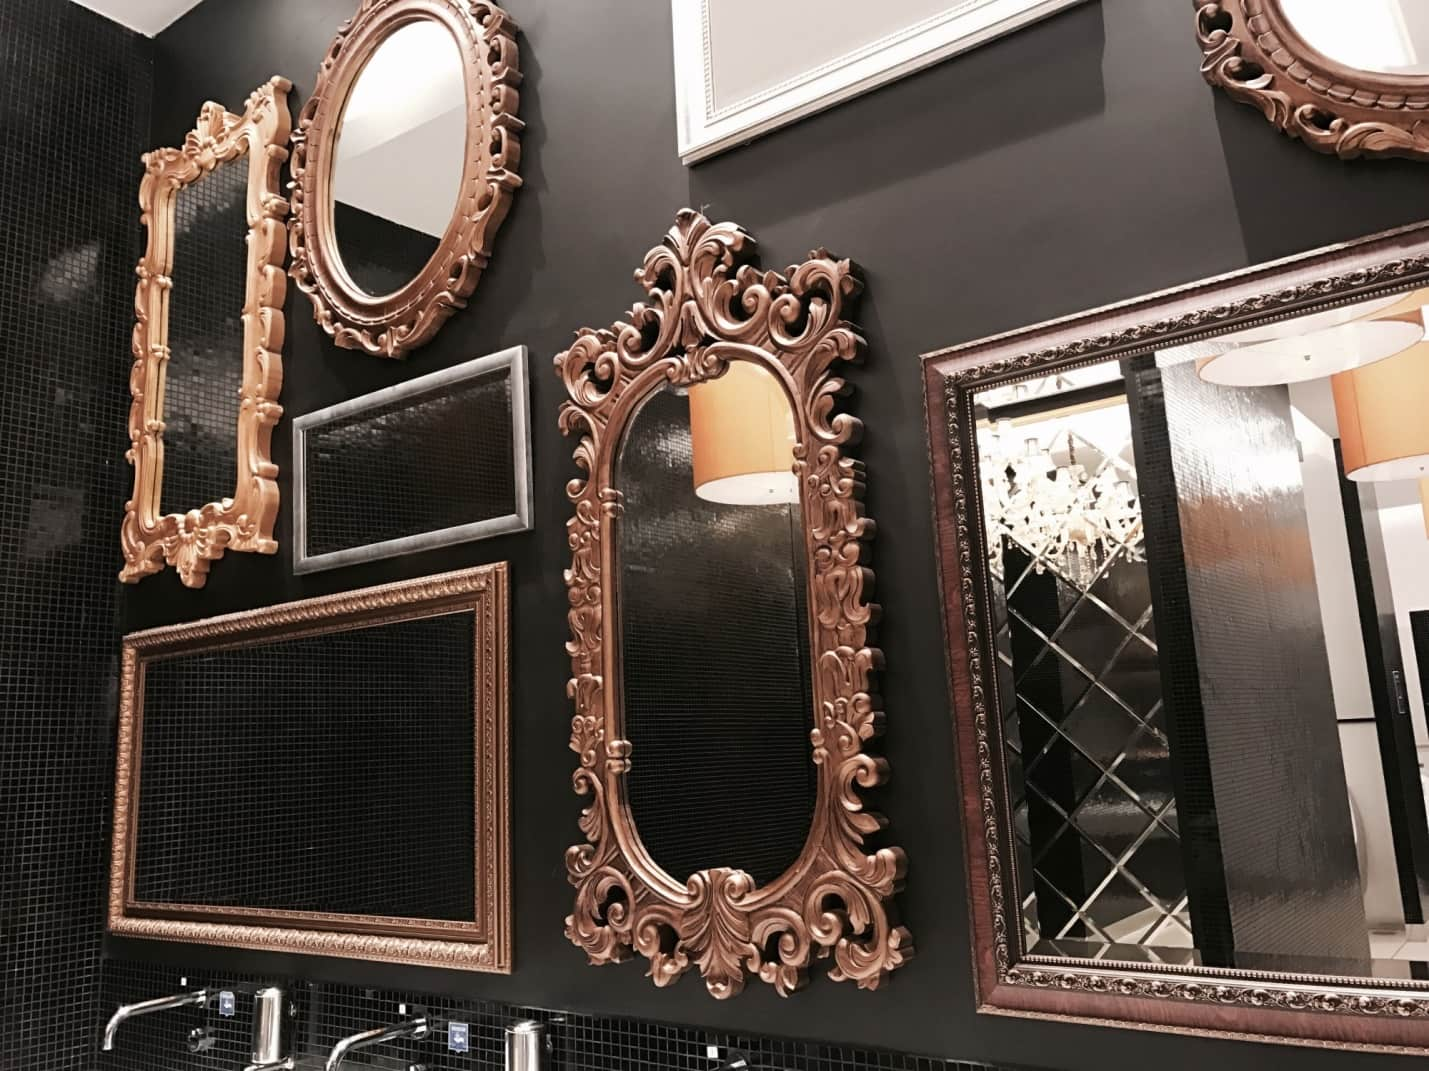 6 Beautiful Wall Mirrors to Consider for Your Home. Dark accent wall with hanging mirrors for exquisite decoration